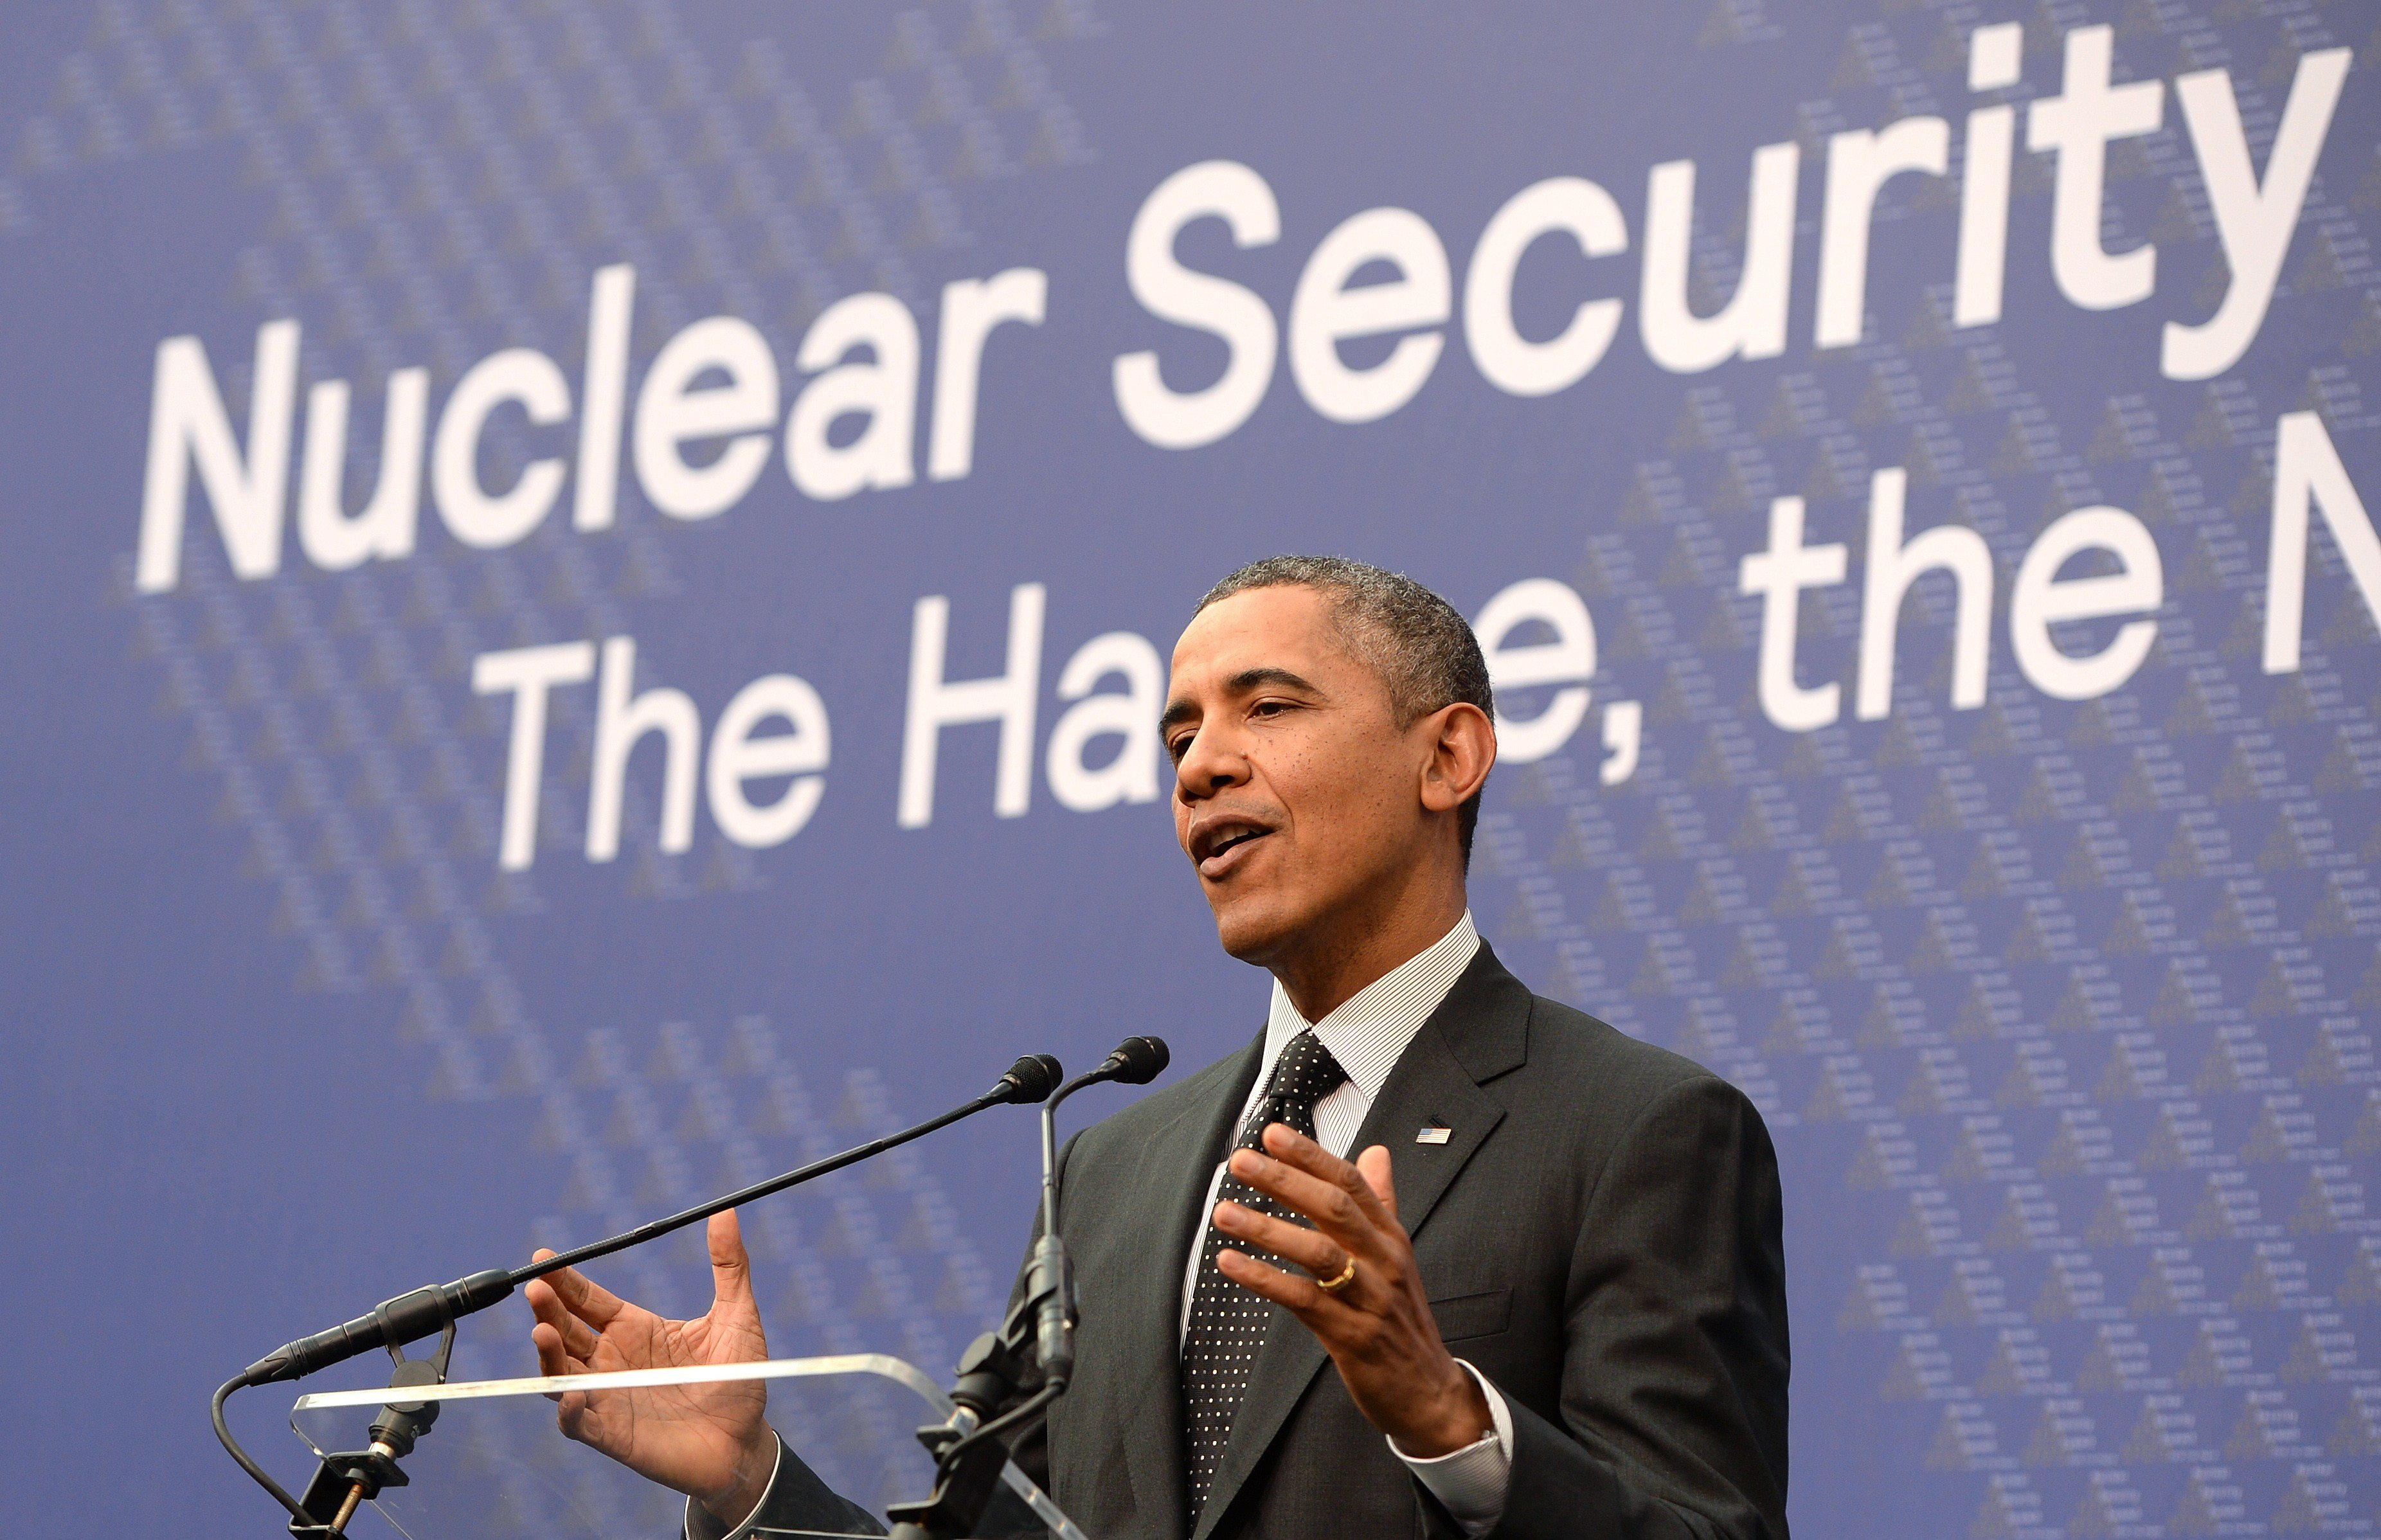 President Barack Obama holds a press conference in The Hague on March 25, 2014, at the end of the nuclear security summit in the Dutch city. (Patrik Stollarz/AFP/Getty Images)